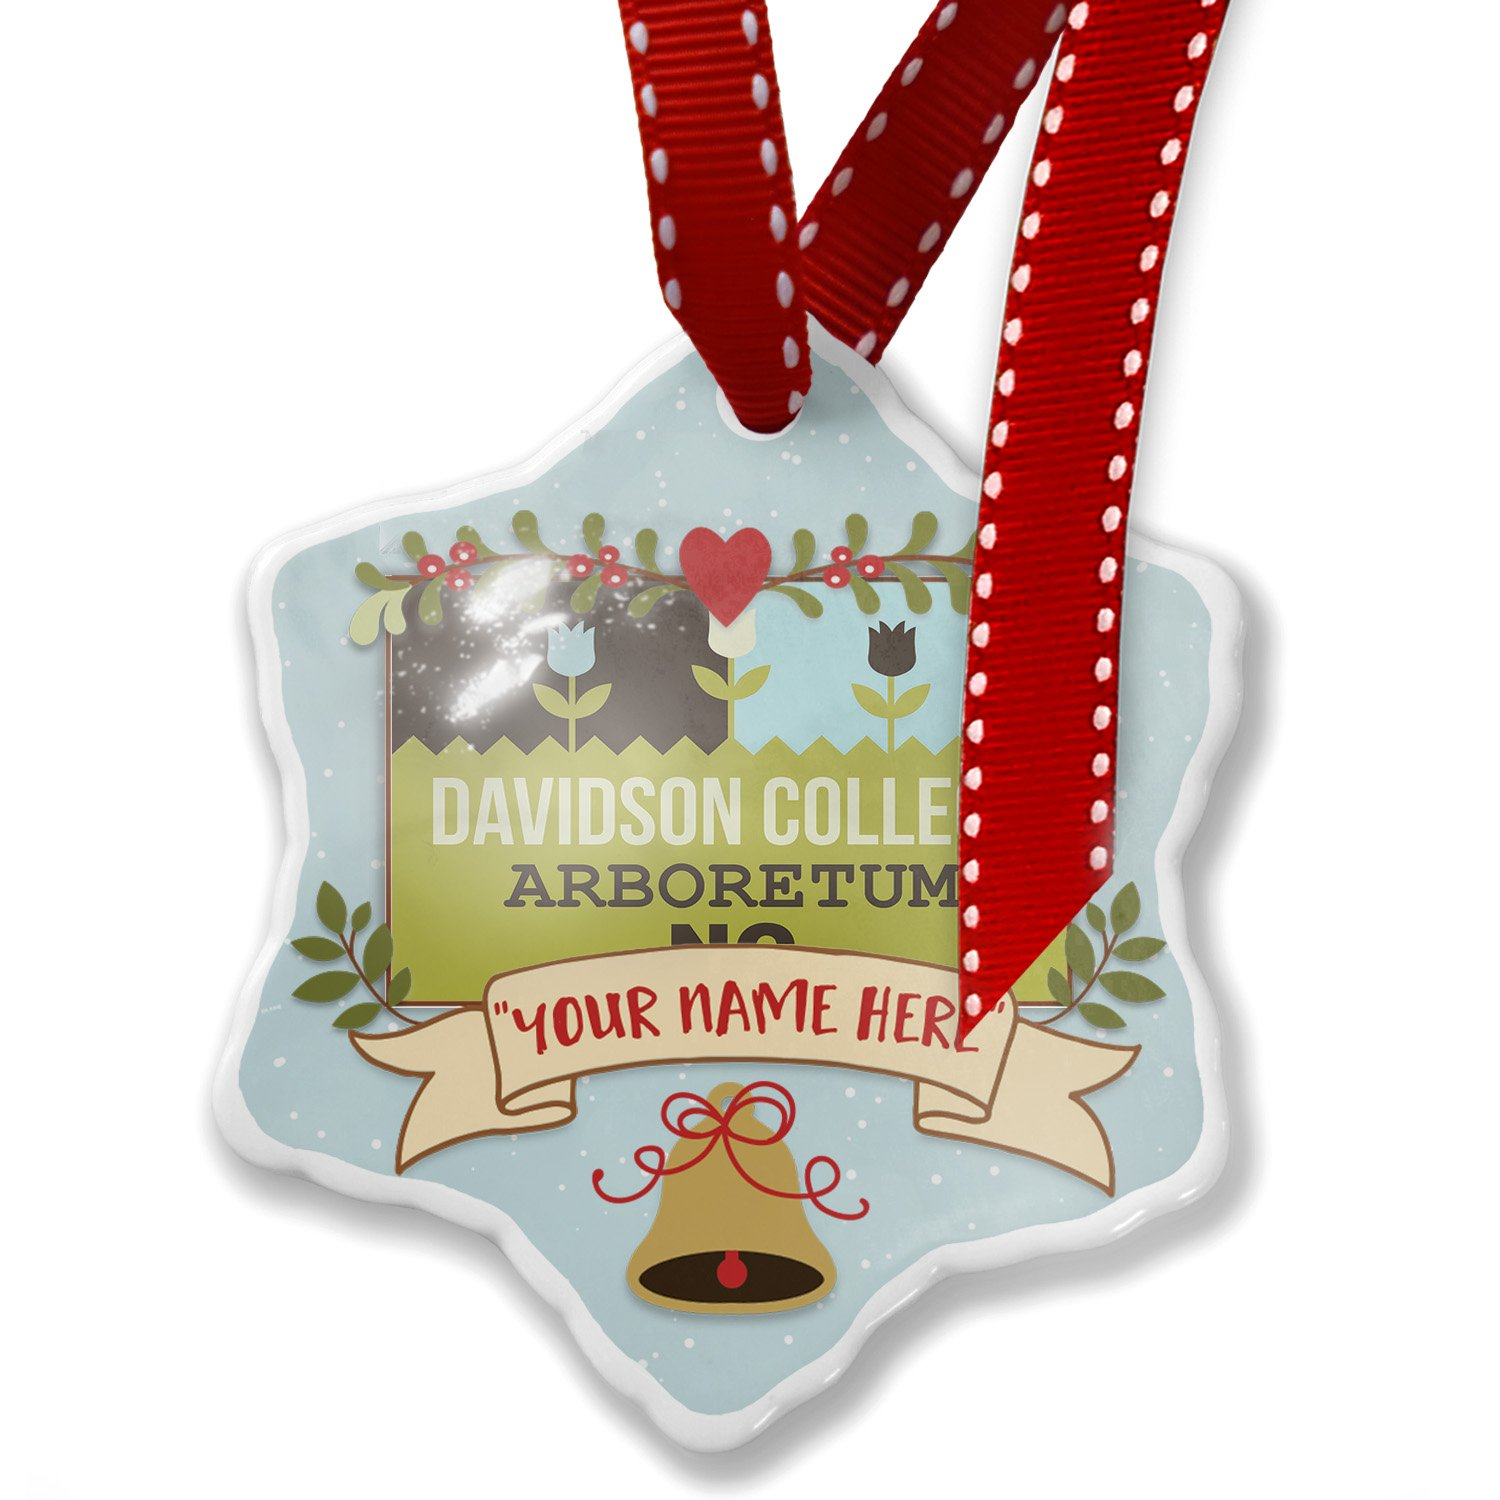 Add Your Own Custom Name, US Gardens Davidson College Arboretum - NC Christmas Ornament NEONBLOND by NEONBLOND (Image #1)